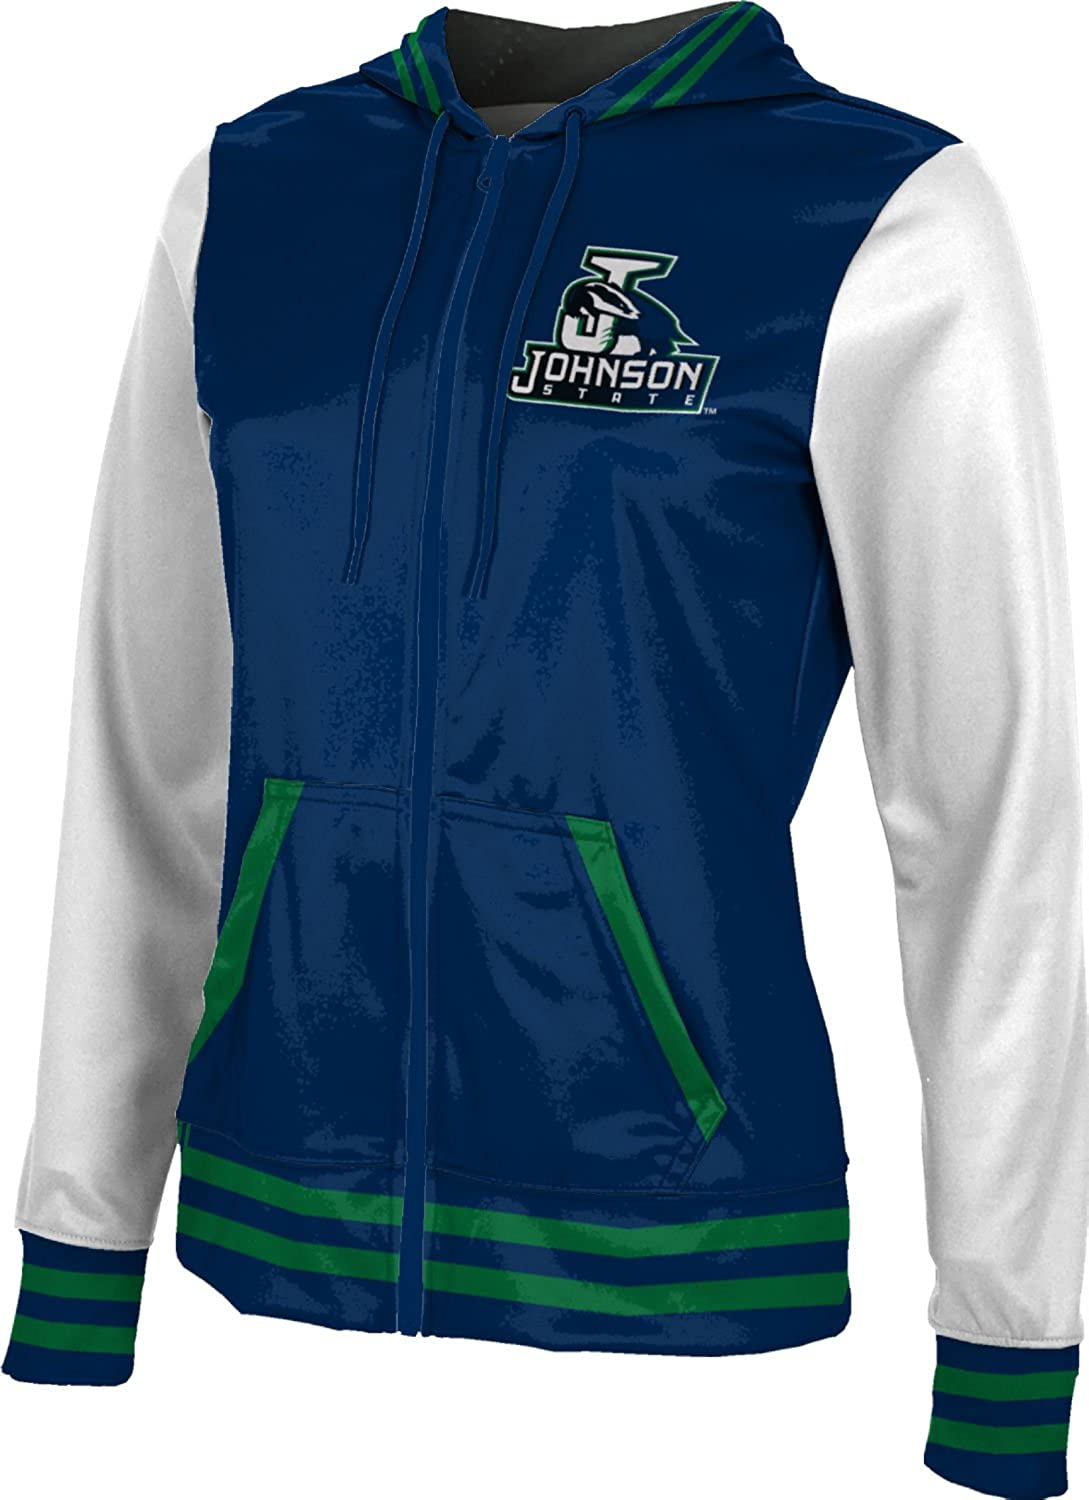 ProSphere Women's Johnson State College Letterman Fullzip Hoodie